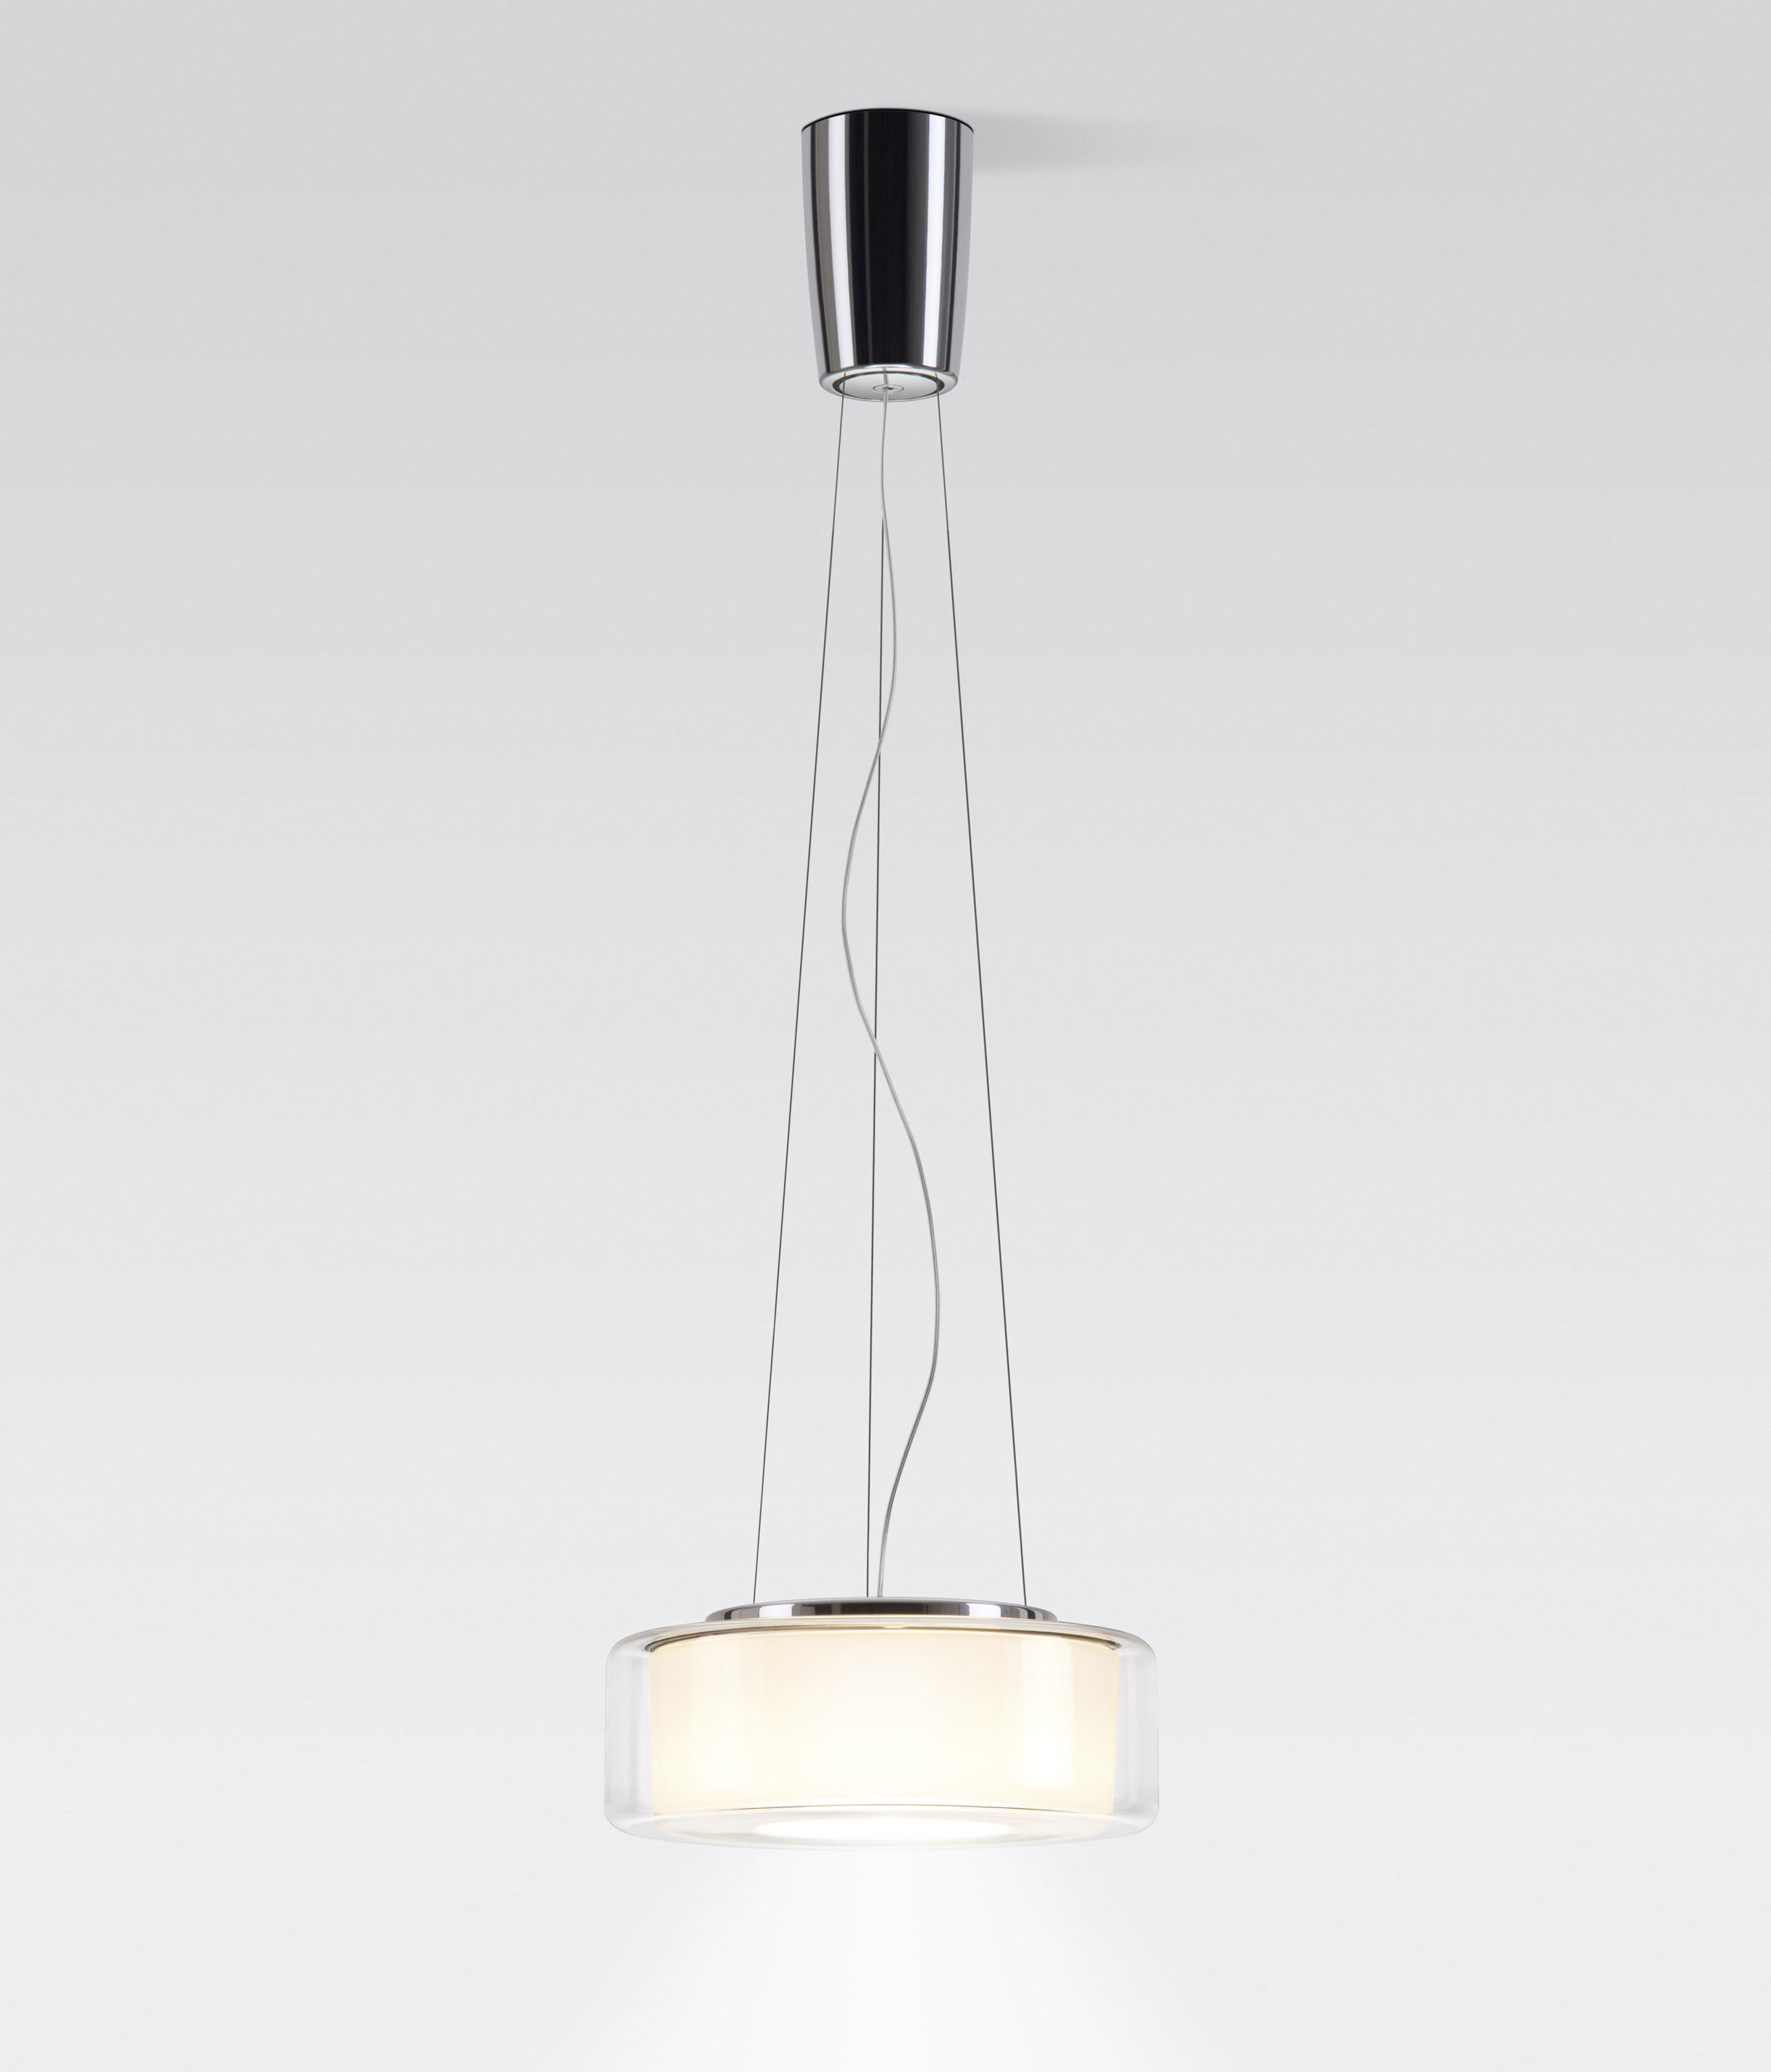 curling suspension clear reflector cylindrical opal rope general lighting from. Black Bedroom Furniture Sets. Home Design Ideas